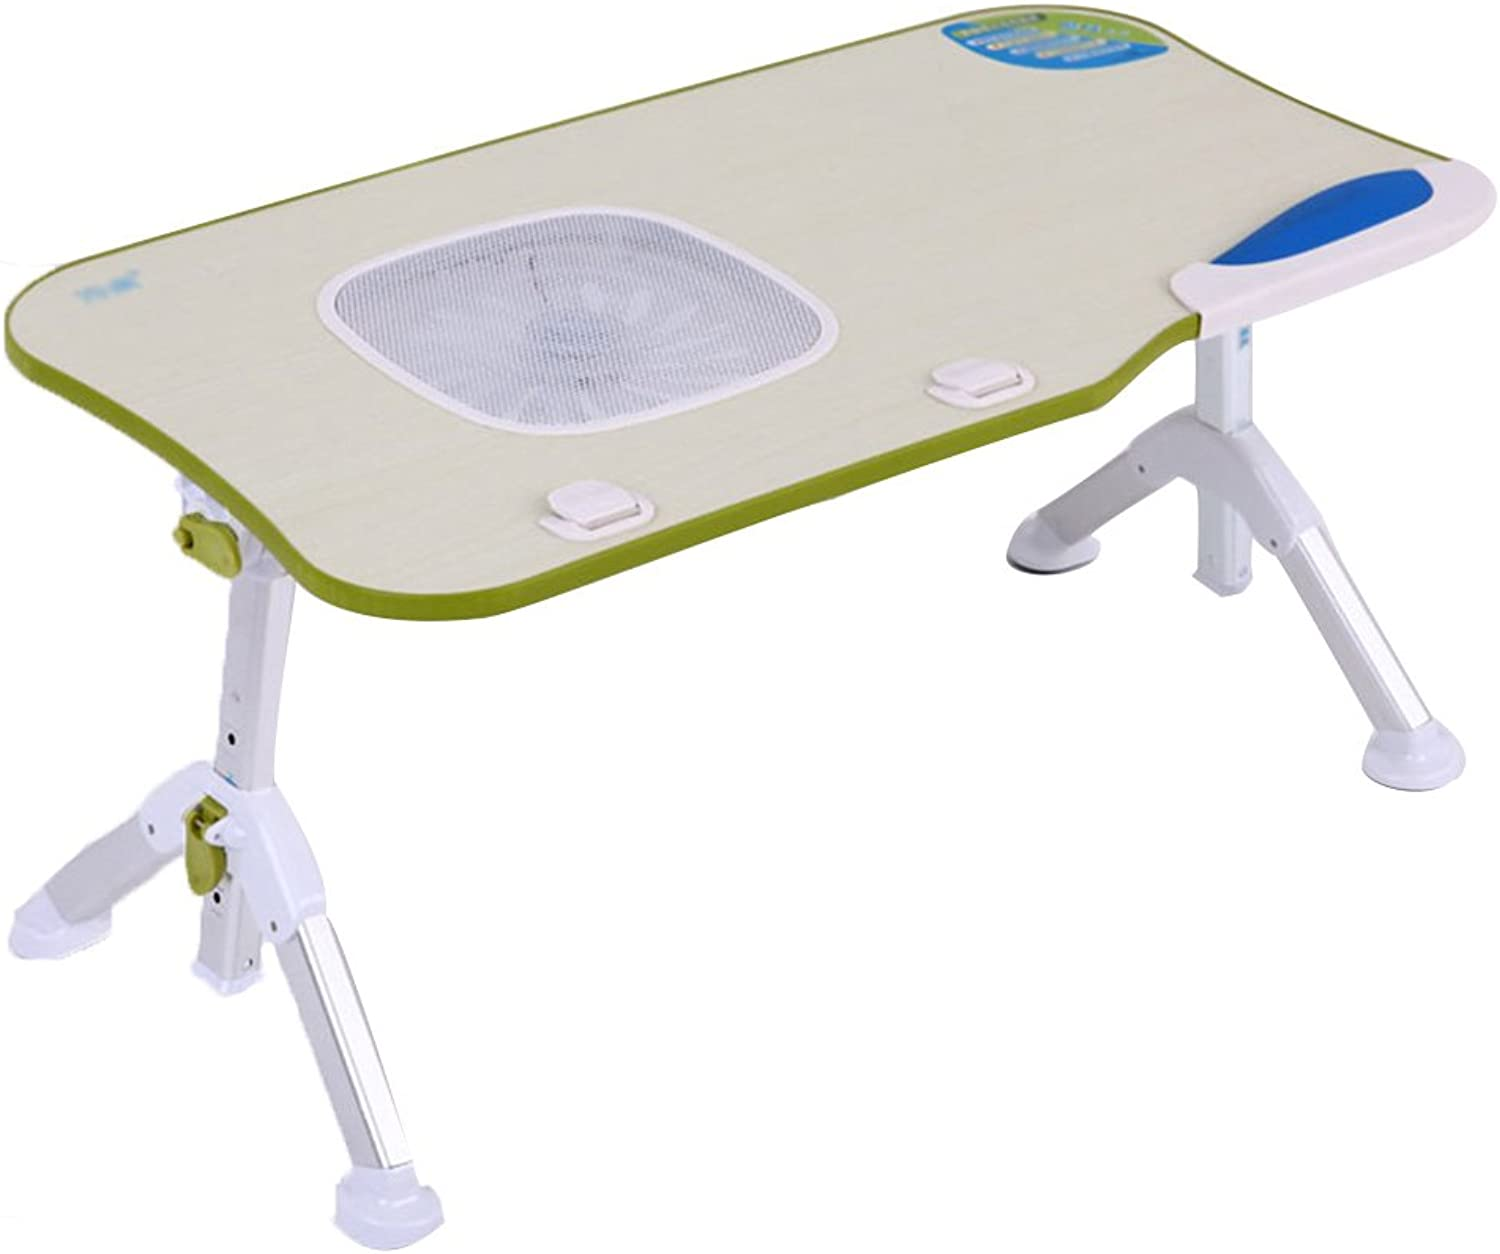 Laptop Table Bed Folding Table Environmental Predection Thick Material Strong Stability (color   Green)